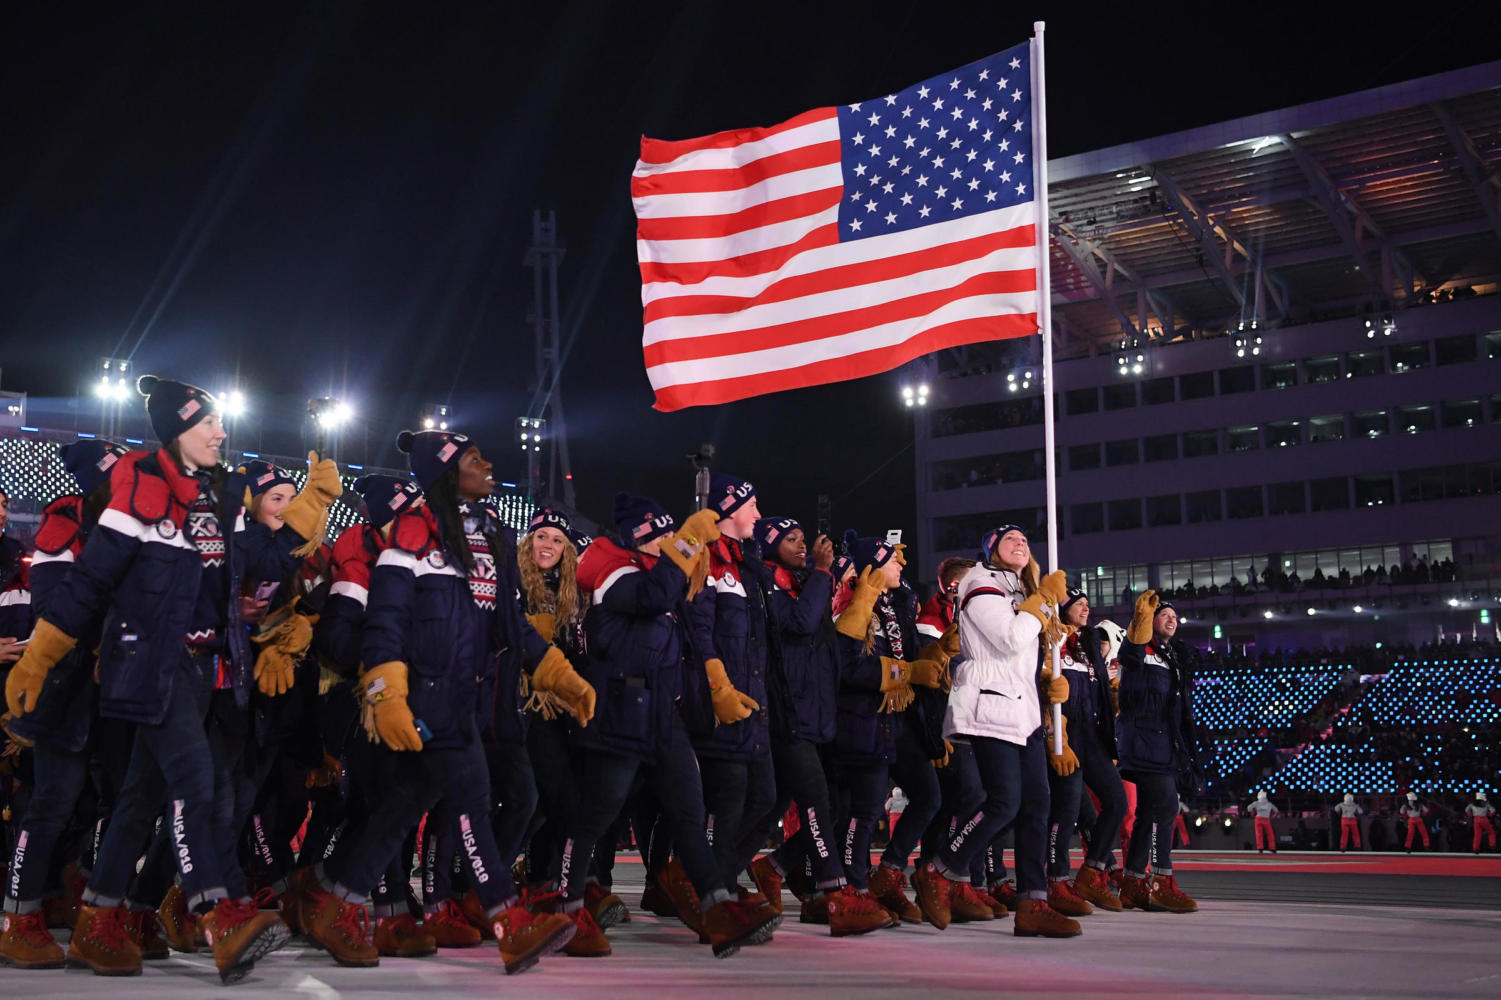 The U.S. Olympic team walks in the Parade of Athletes before the 2018 Pyeongchang Winter Olympics.